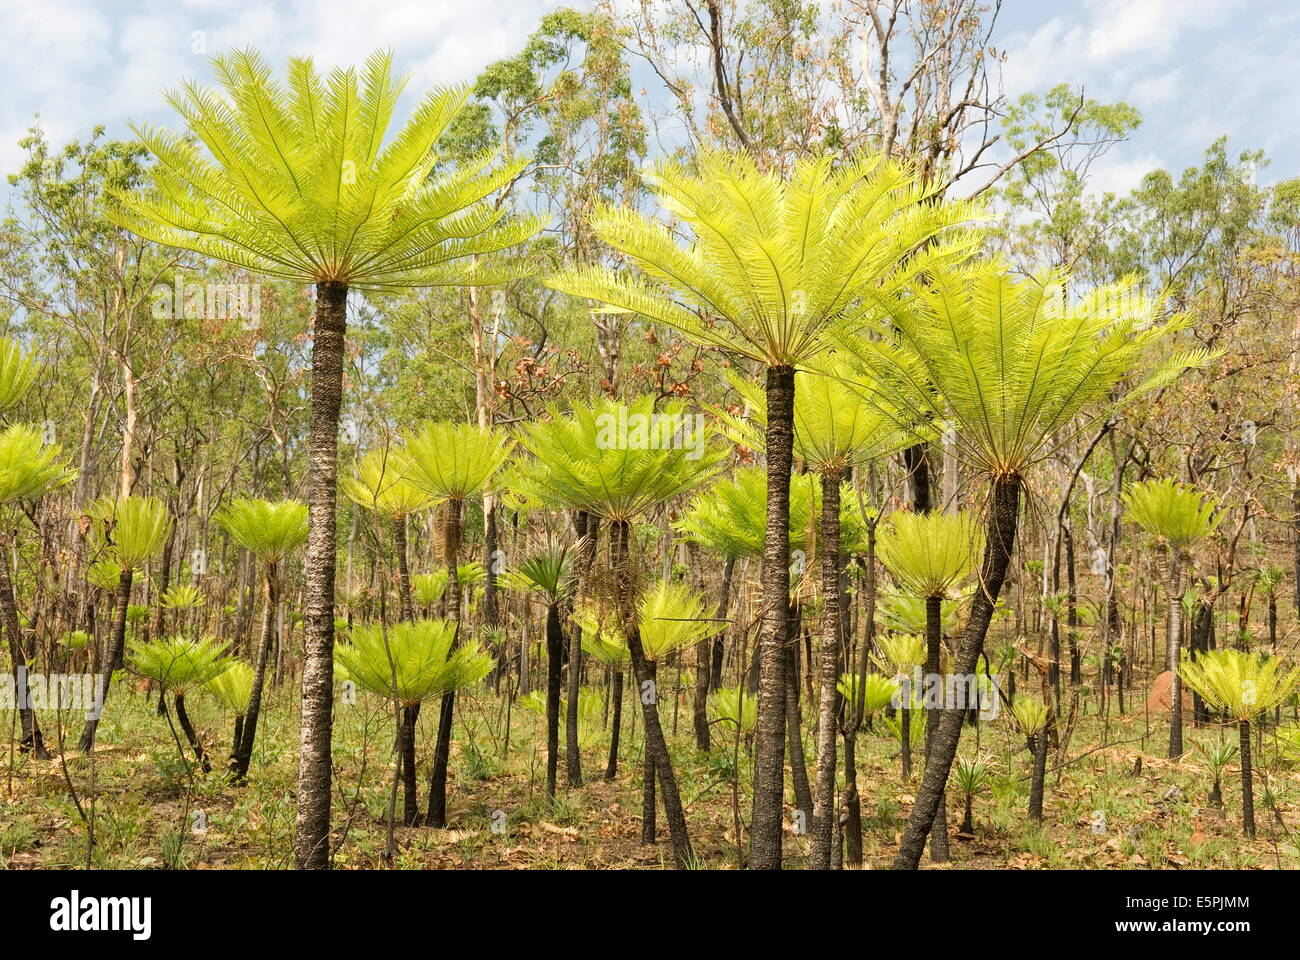 Dicksonia tree ferns in Litchfield National Park, Northern Territory, Australia, Pacific - Stock Image